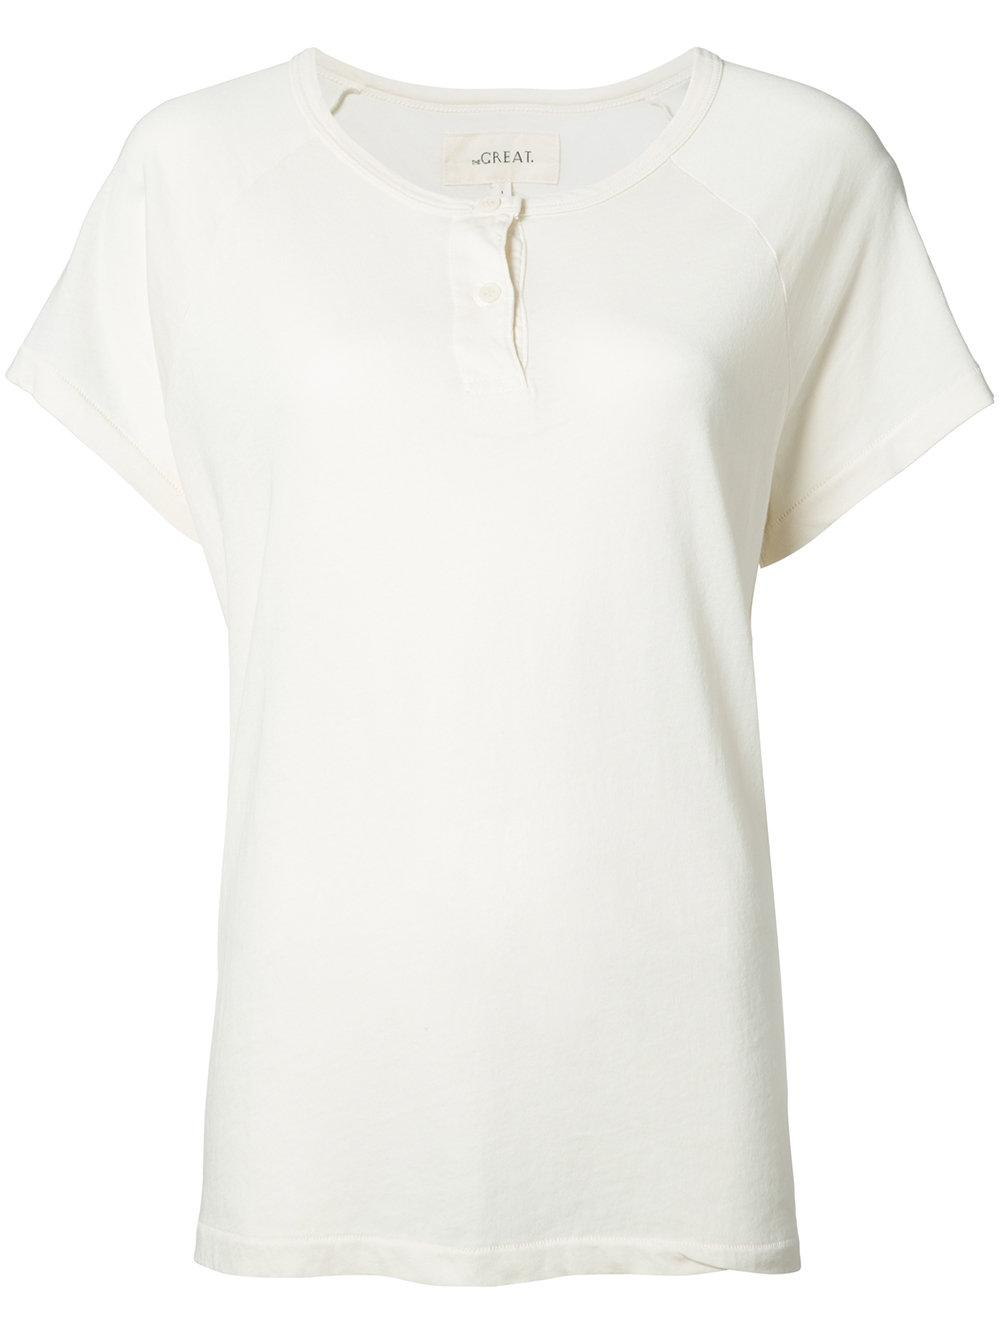 The Great Henley T Shirt In White Lyst